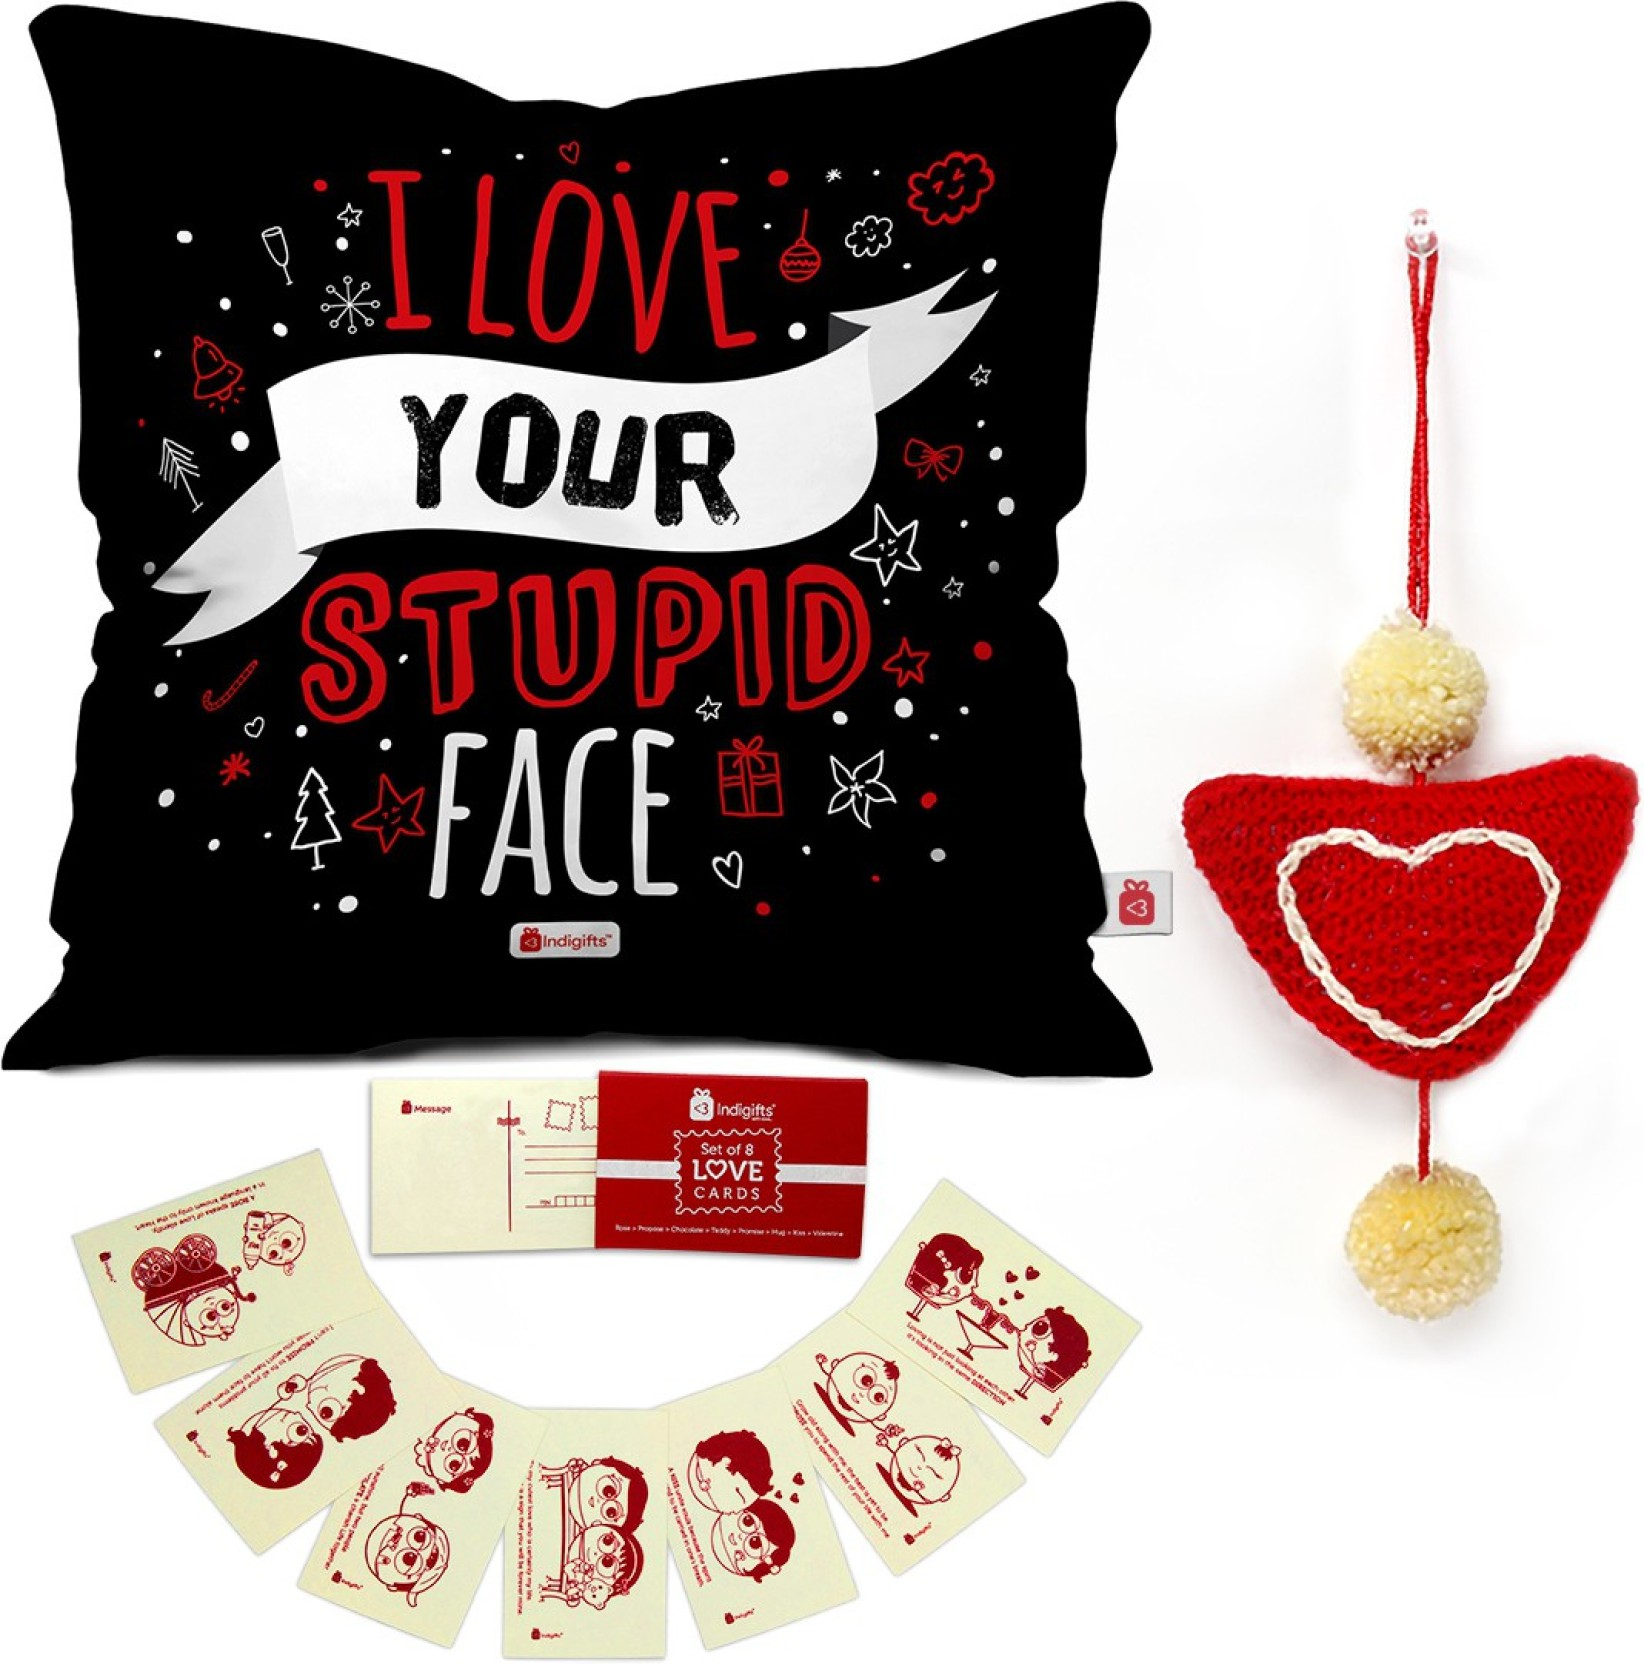 Indi ts 0D 0CM069 0LOV Y16 D096 Cushion Greeting Card Showpiece